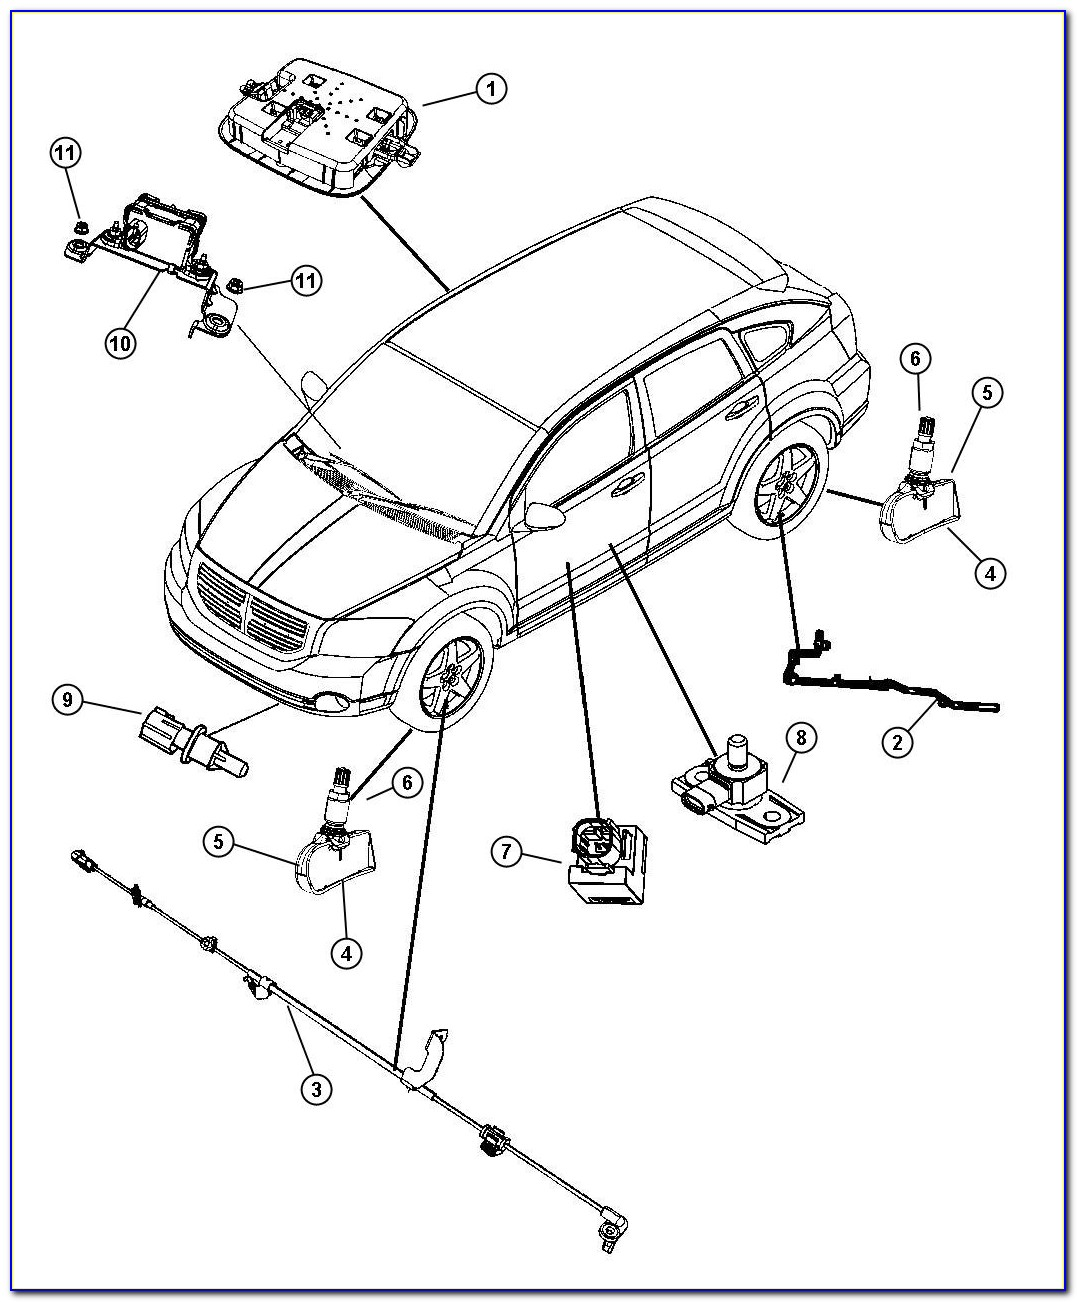 2009 Dodge Charger Factory Radio Wiring Diagram